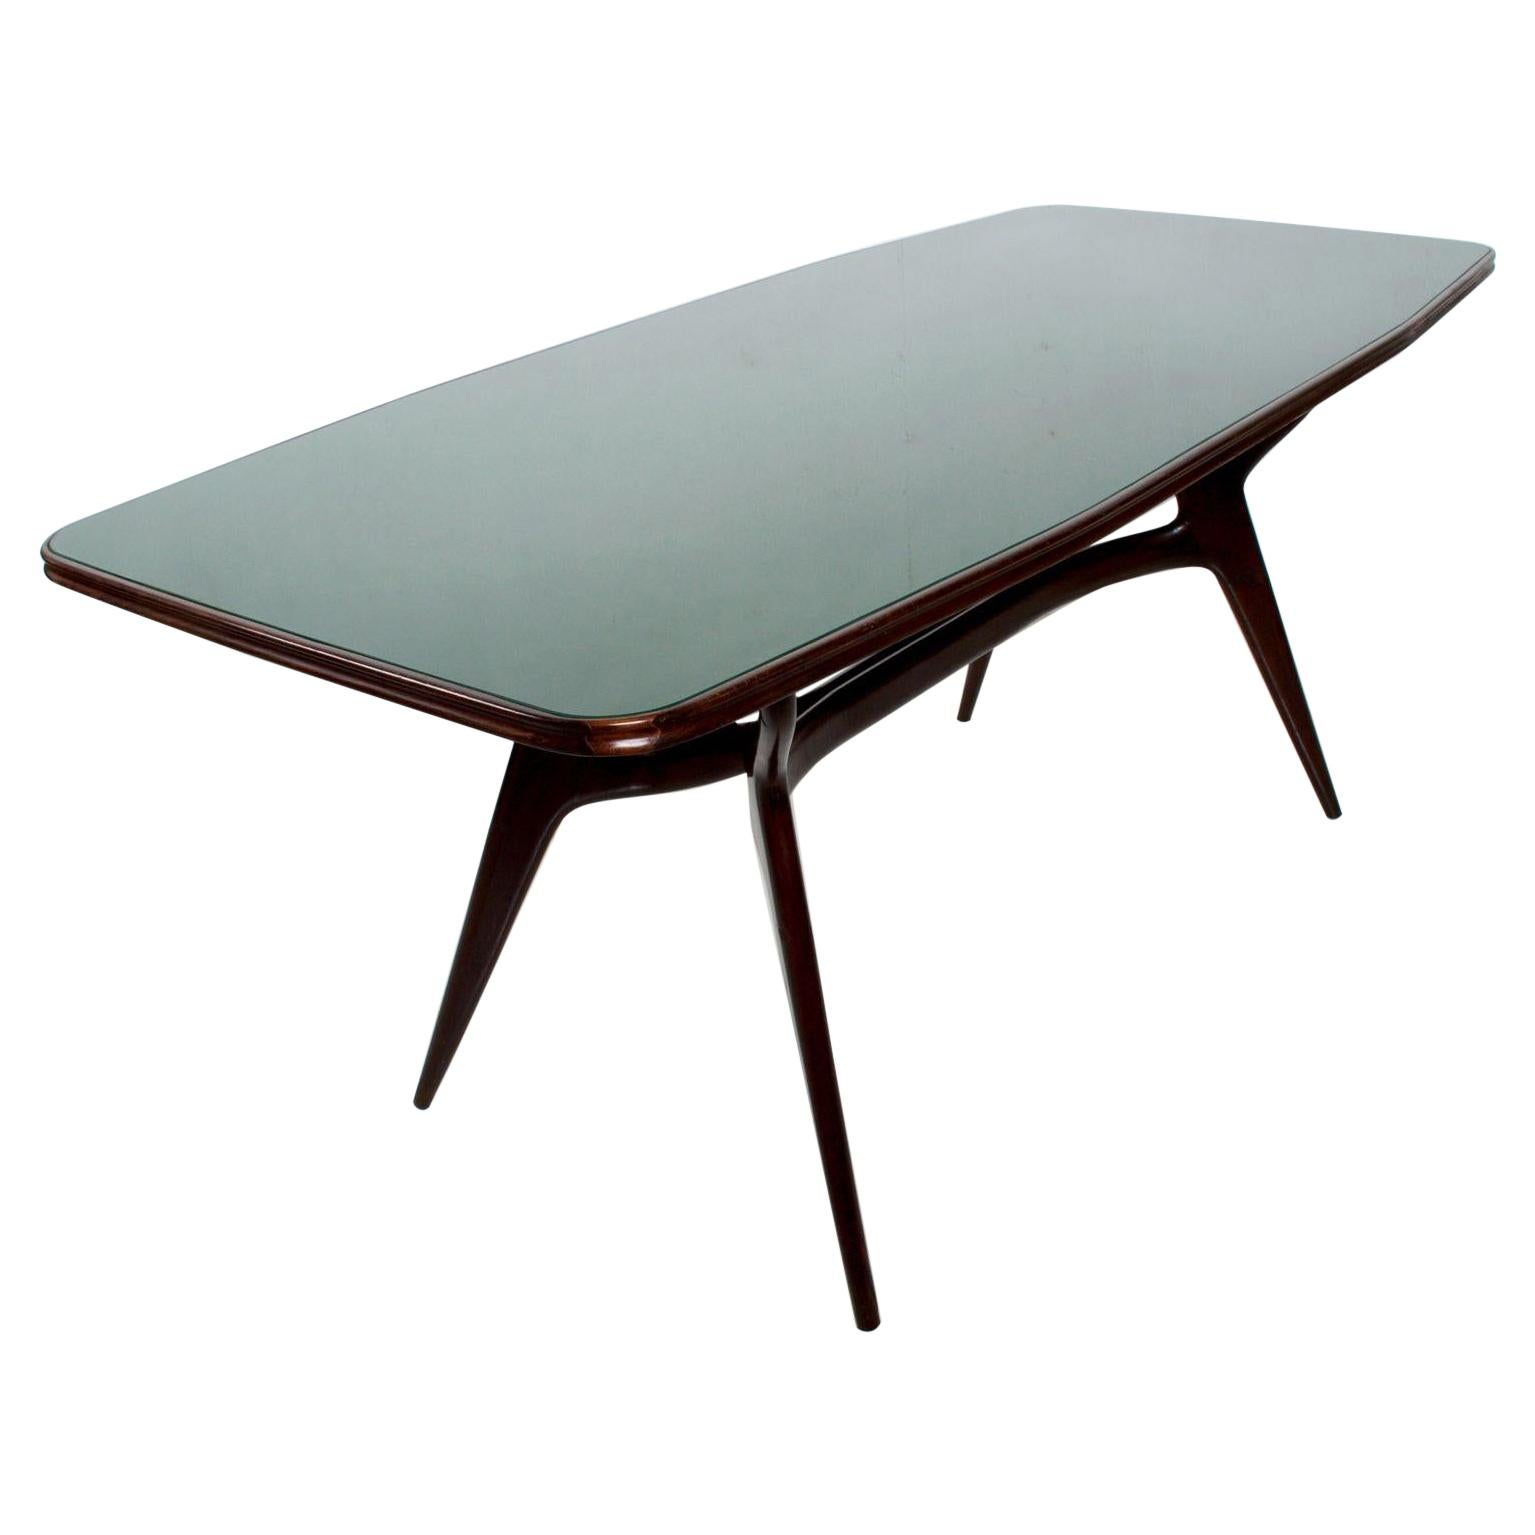 Mid-Century Modern Italian Green Dining Table after Ico Parisi, 1950s